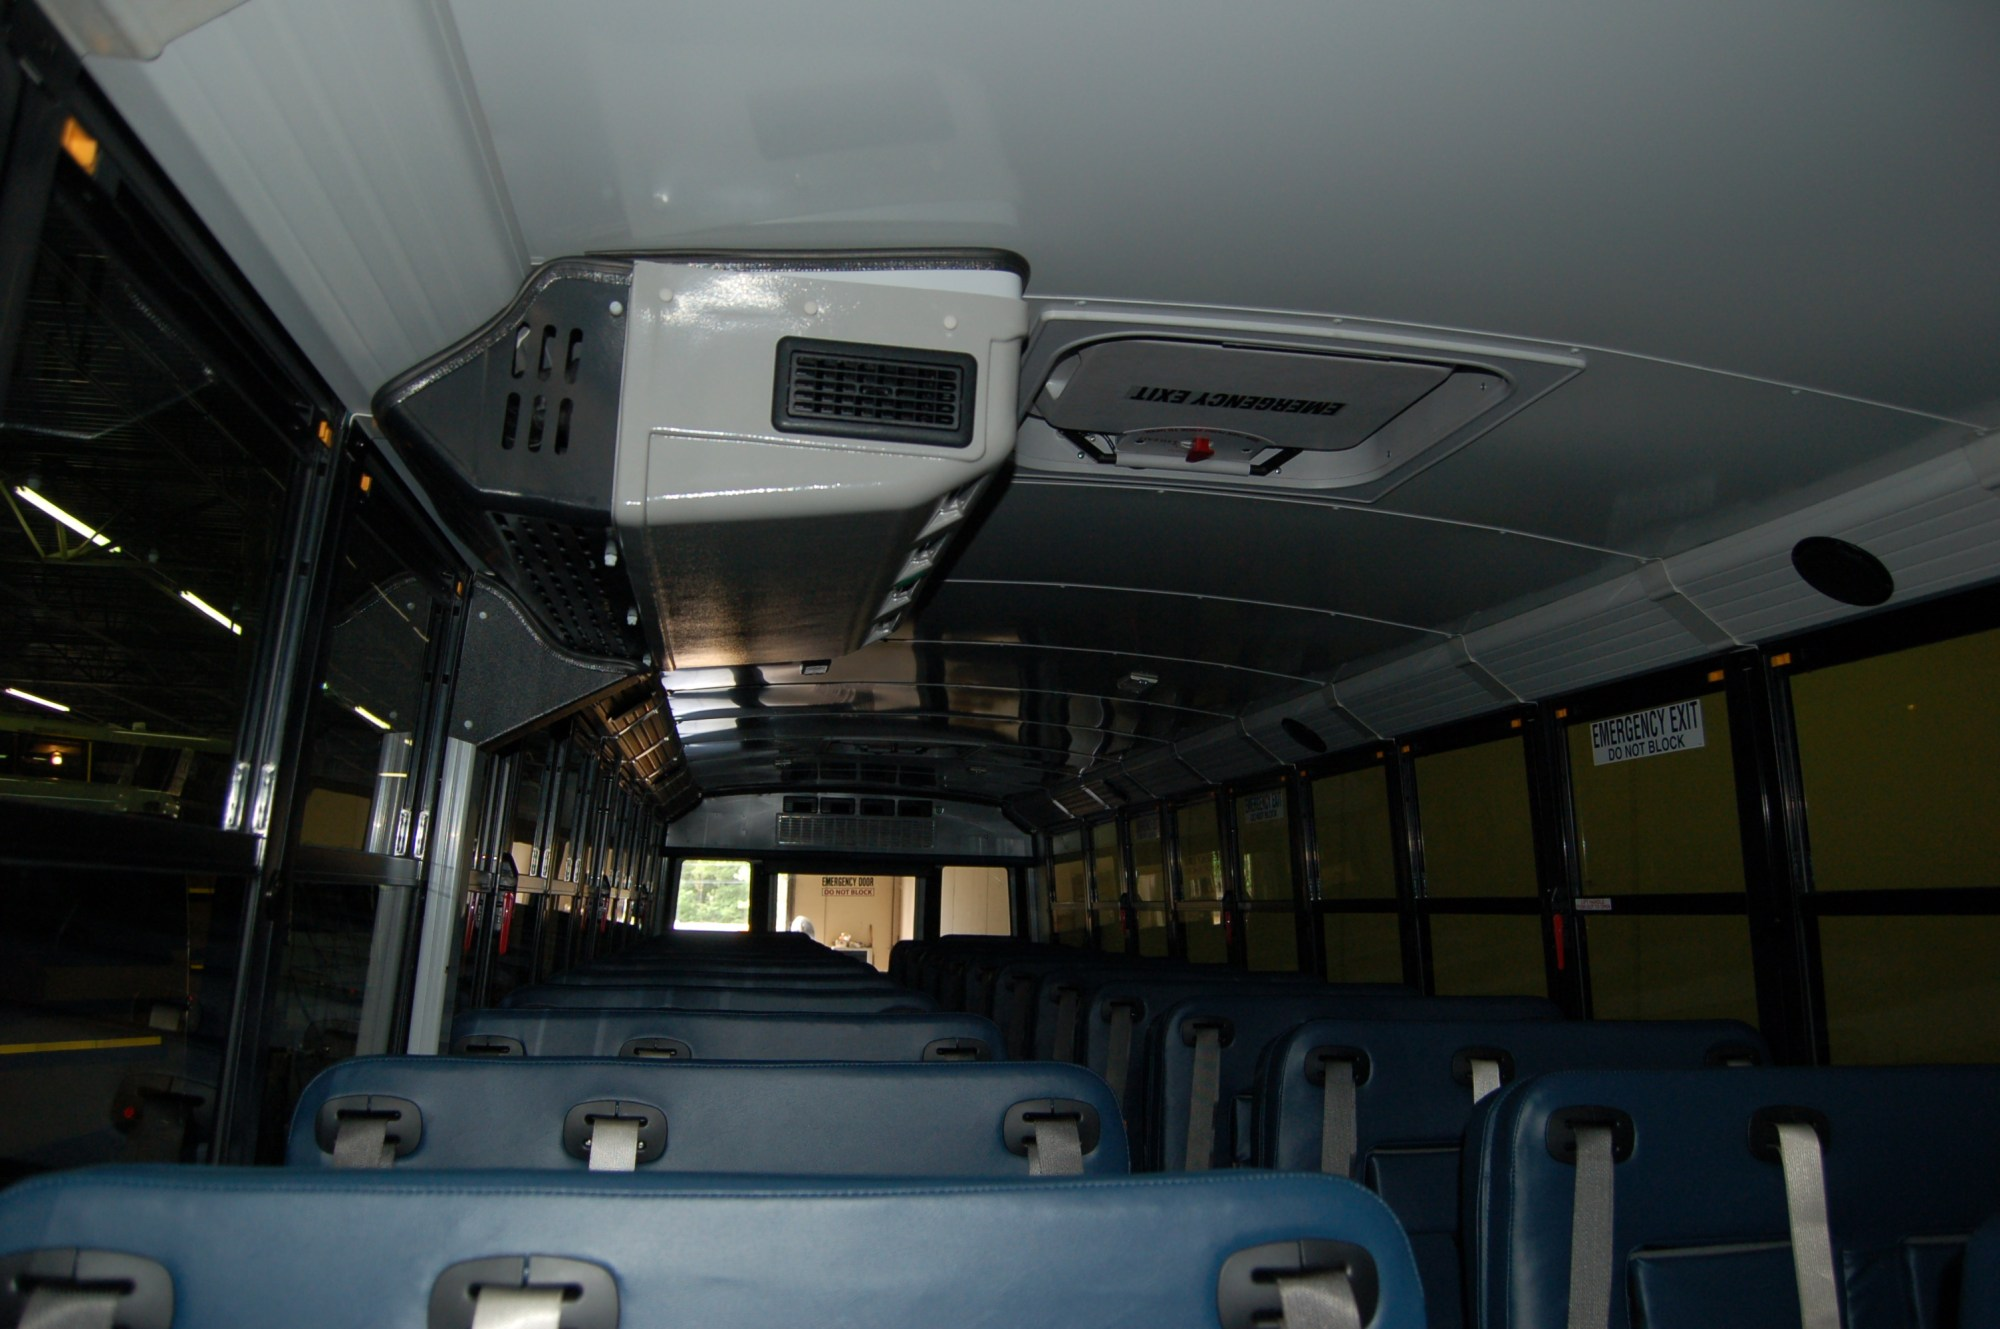 hight resolution of bus a c systems are typically referred to by their installed location front mid and rear this mid unit hangs from the ceiling while the rear unit is